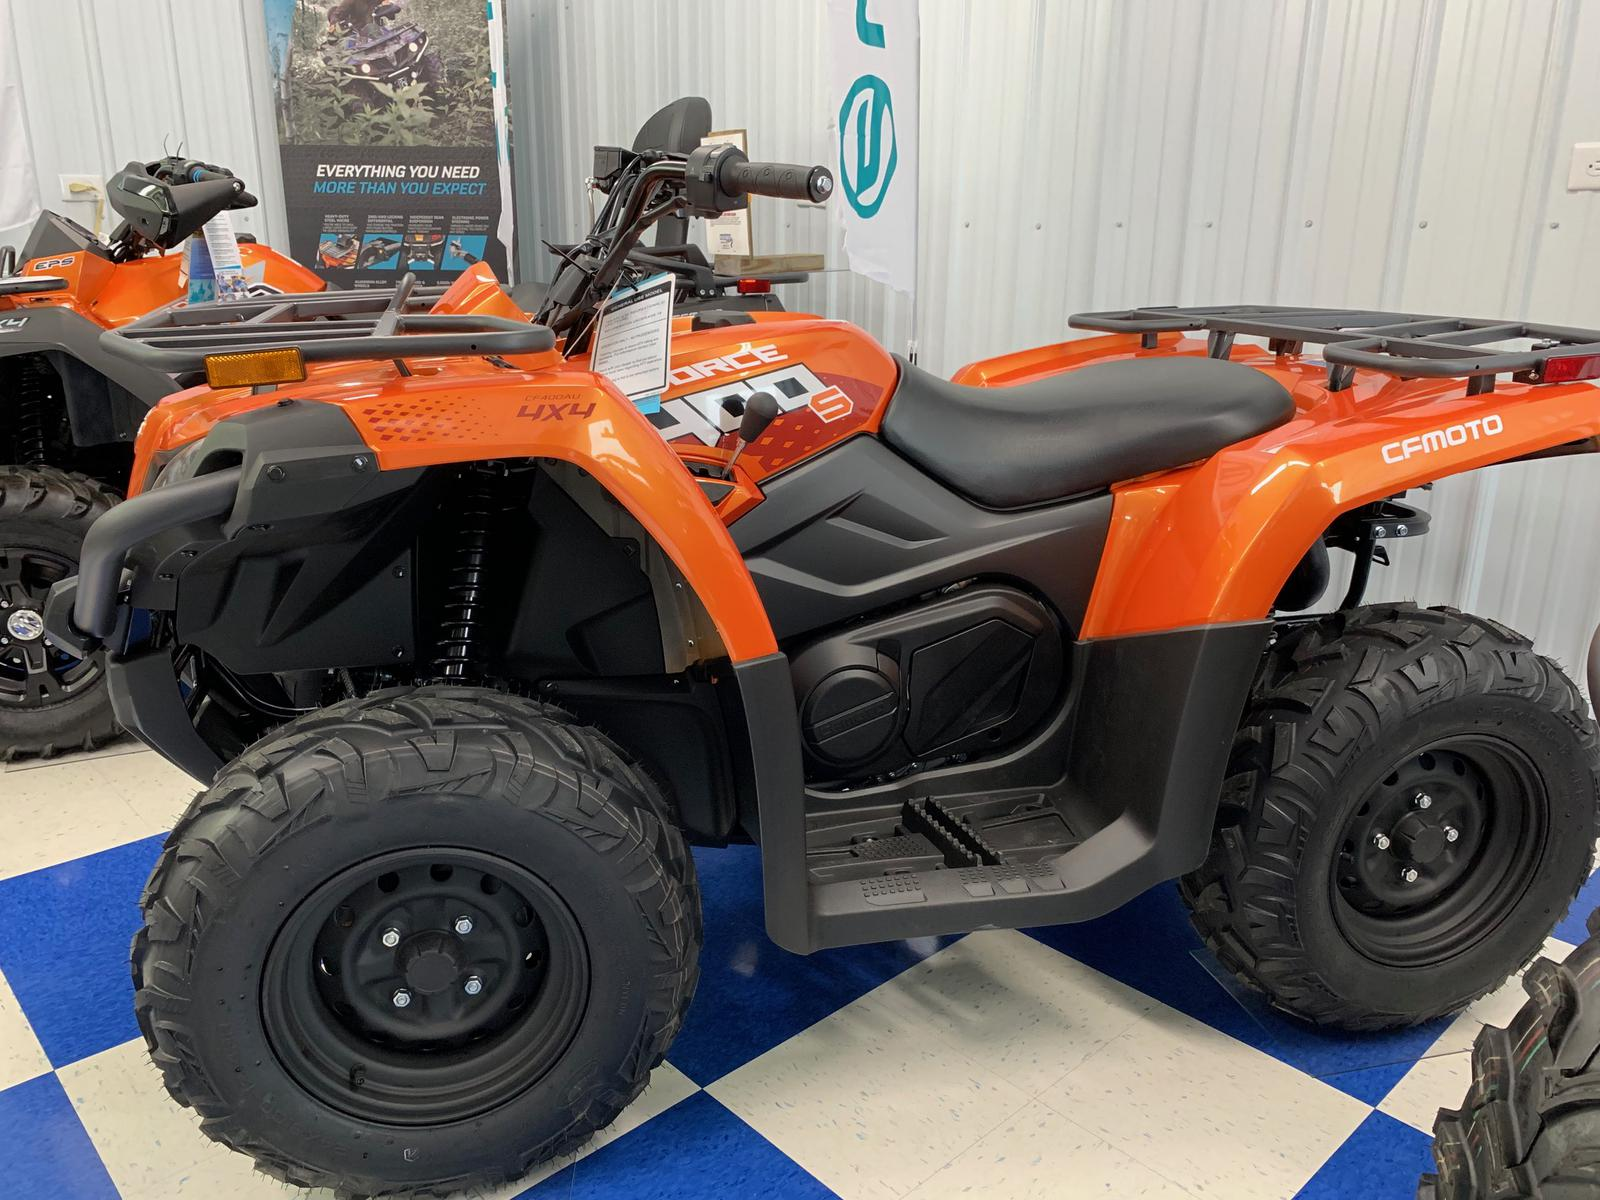 Inventory Country Roads Powersports Greenville, KY (270) 338-2732